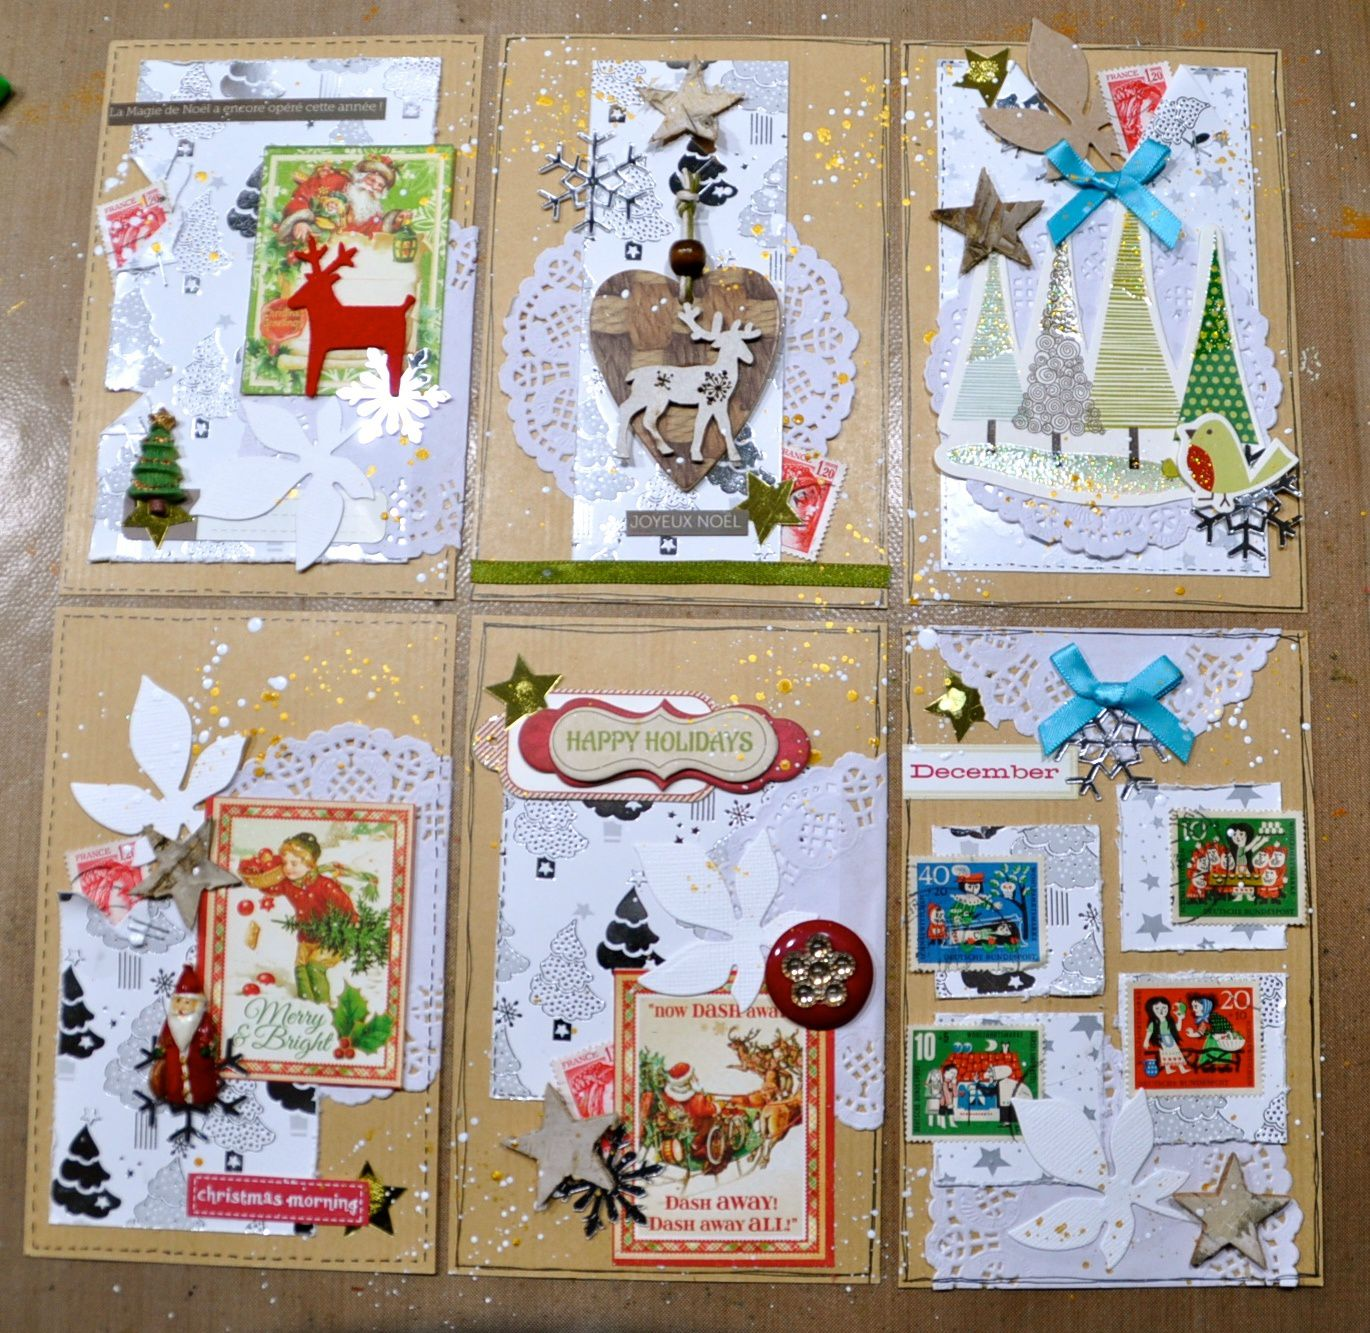 CARTERIE DE NOEL: THE ONE SHEET WONDER CARDS #1